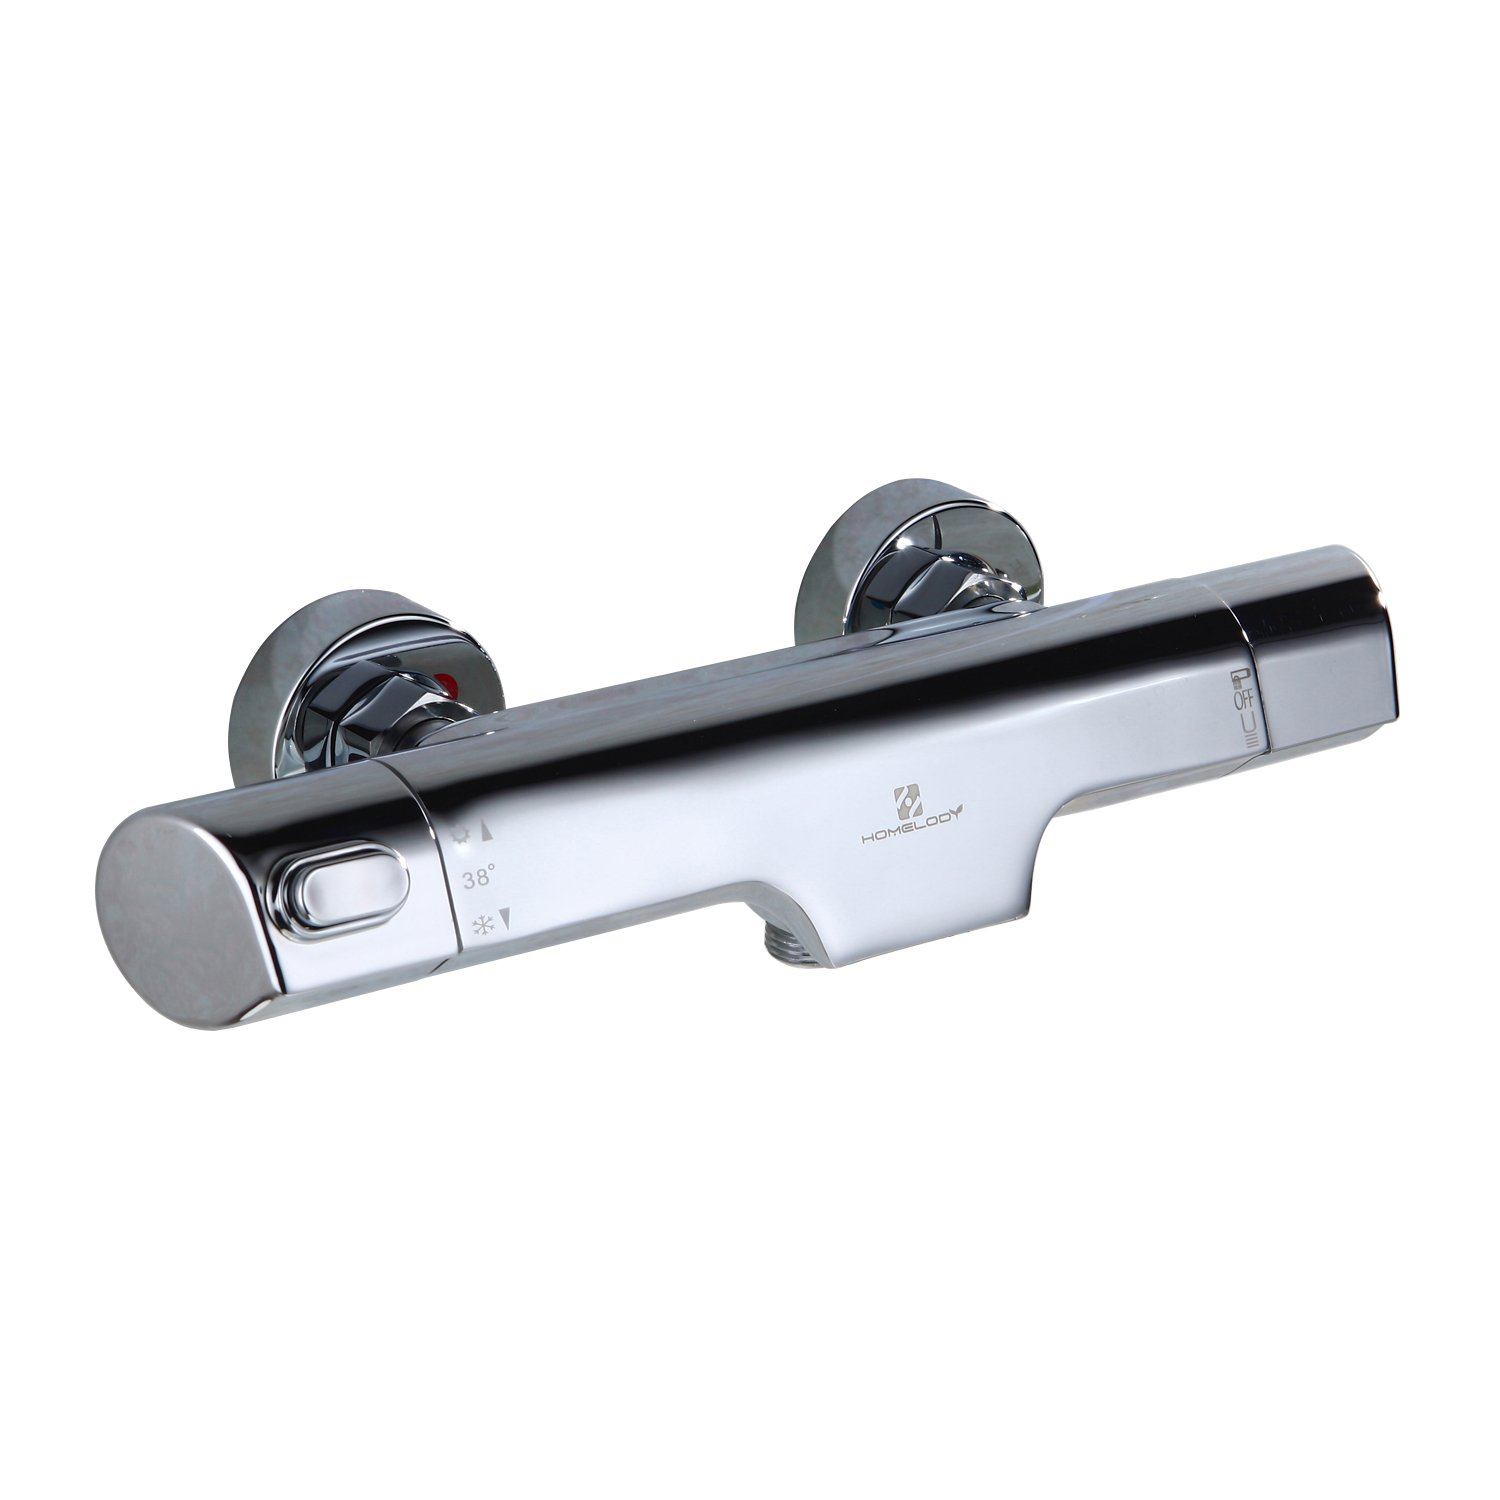 HOMELODY Chrome Thermostatic Bath Mixer Shower Bar Valve Bathroom Waterfall Mixer Tap,Wall Mounted Thermostatic Shower Bar